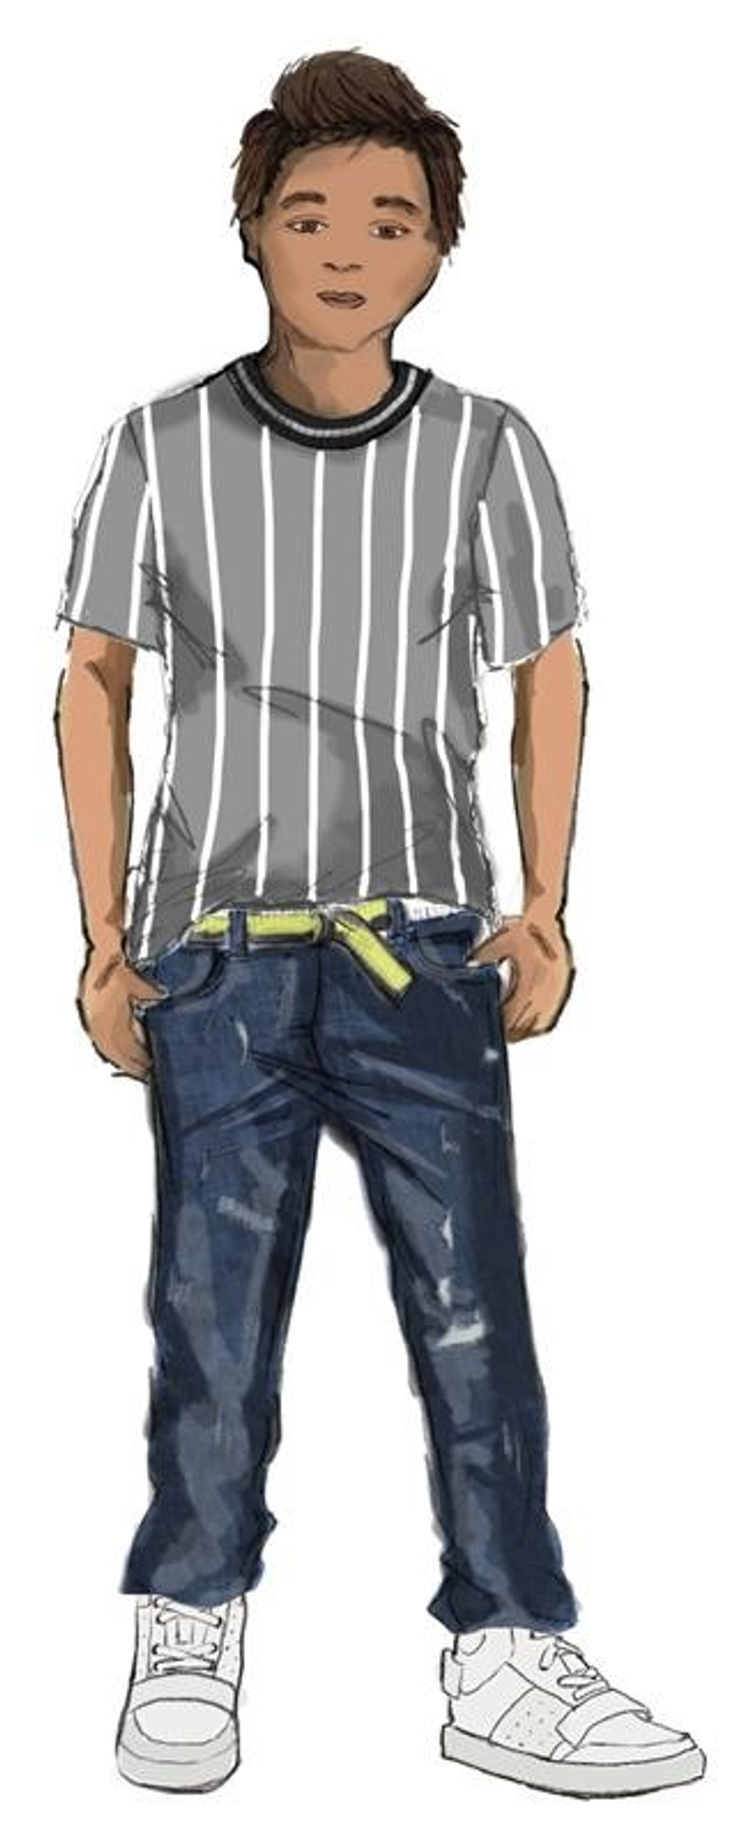 drawing of boy in kids clothes